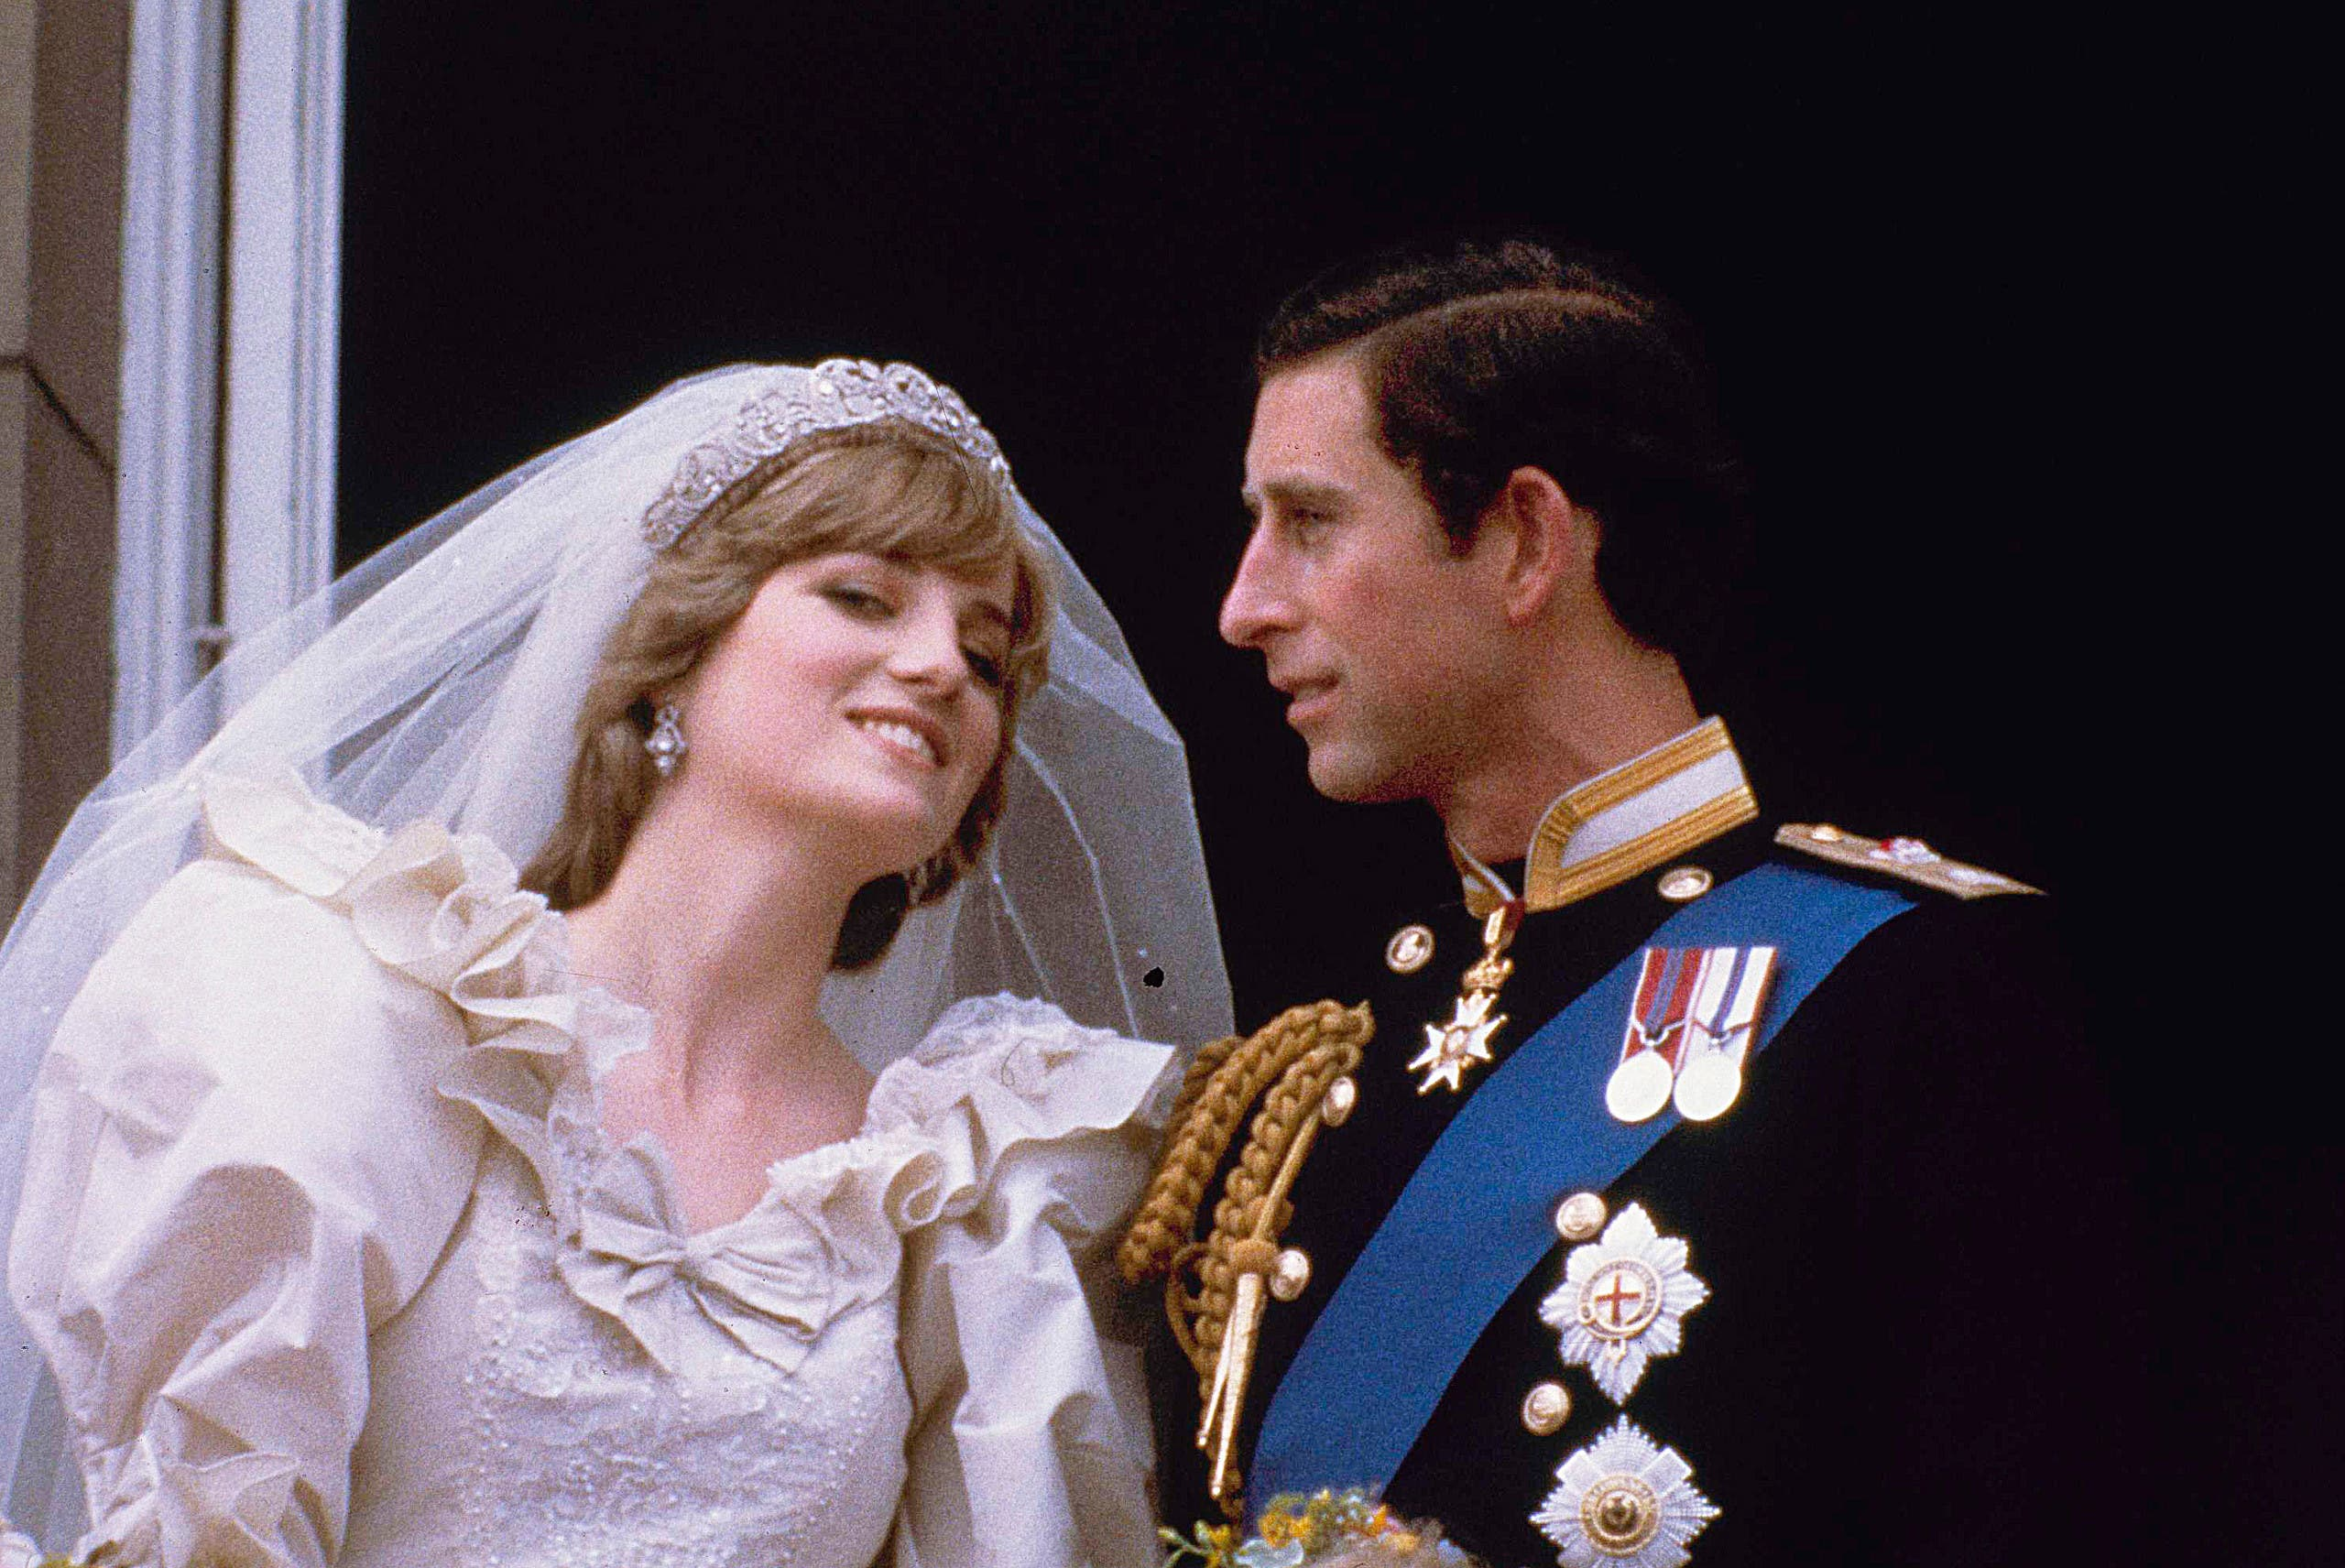 Prince Charles and his bride Diana, Princess of Wales, are shown on their wedding day on the balcony of Buckingham Palace in London, July 29, 1981.  (AP)